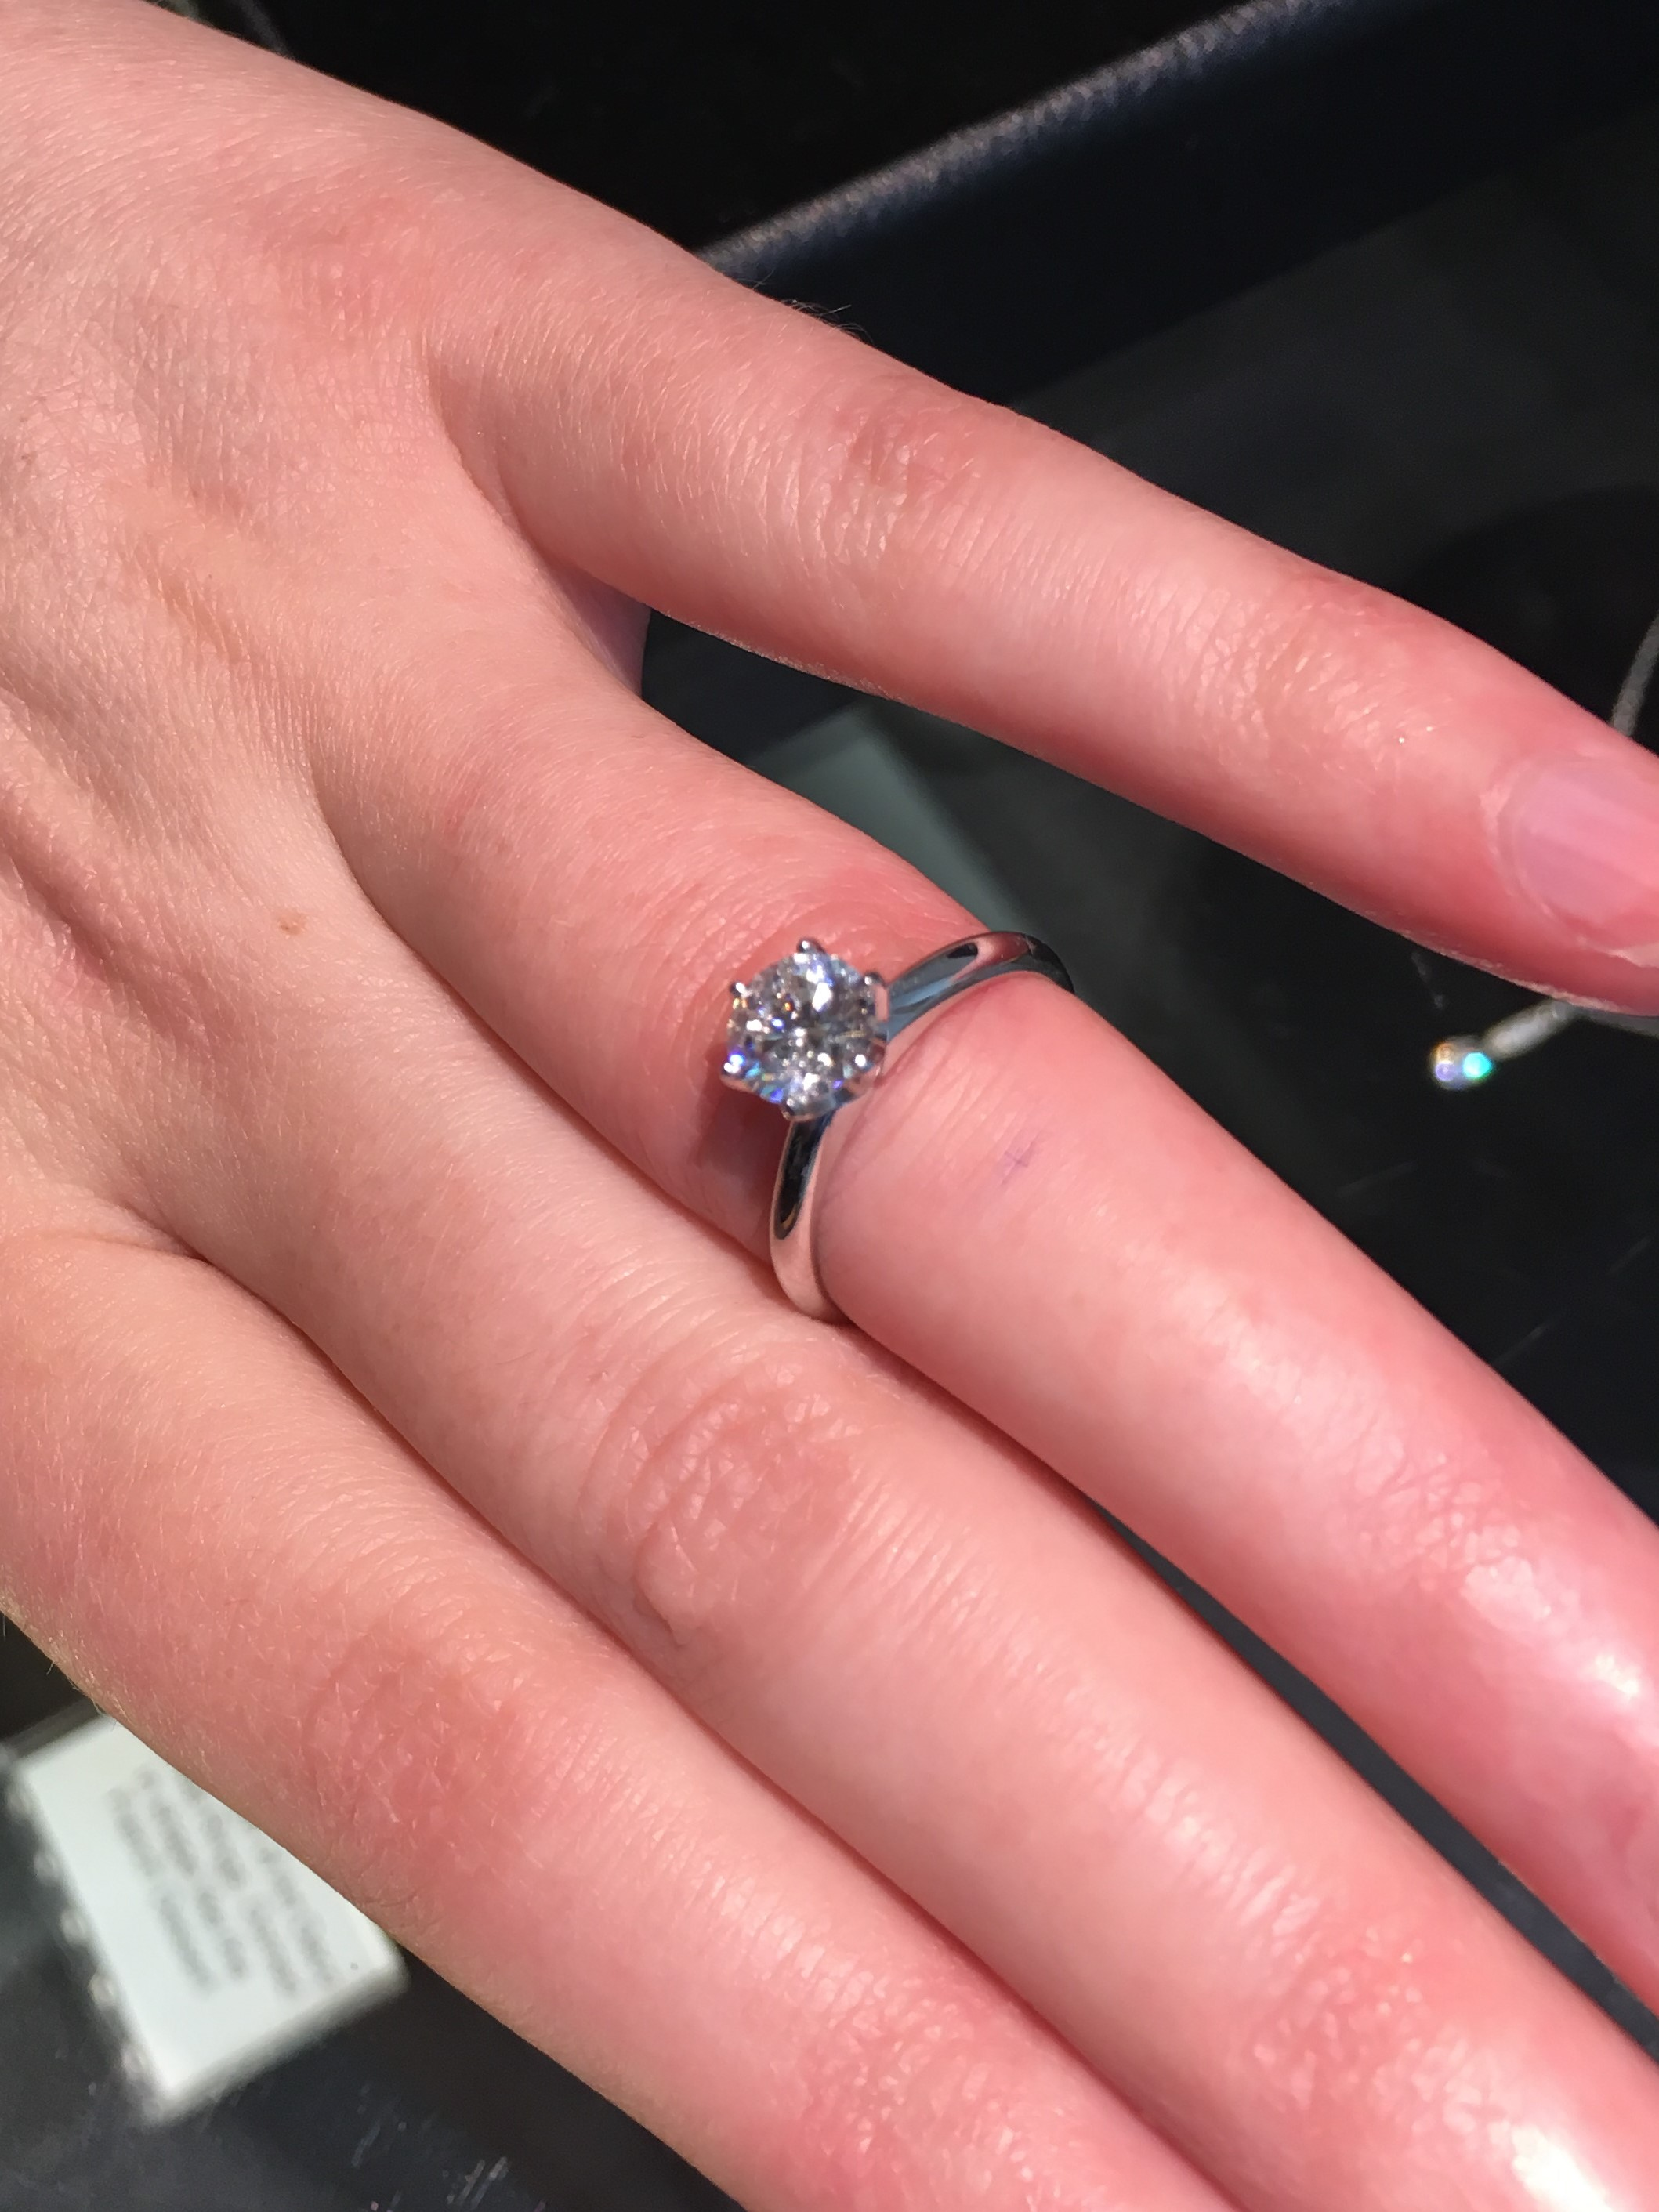 Please help me find an engagement ring (round solitaire, plain band)